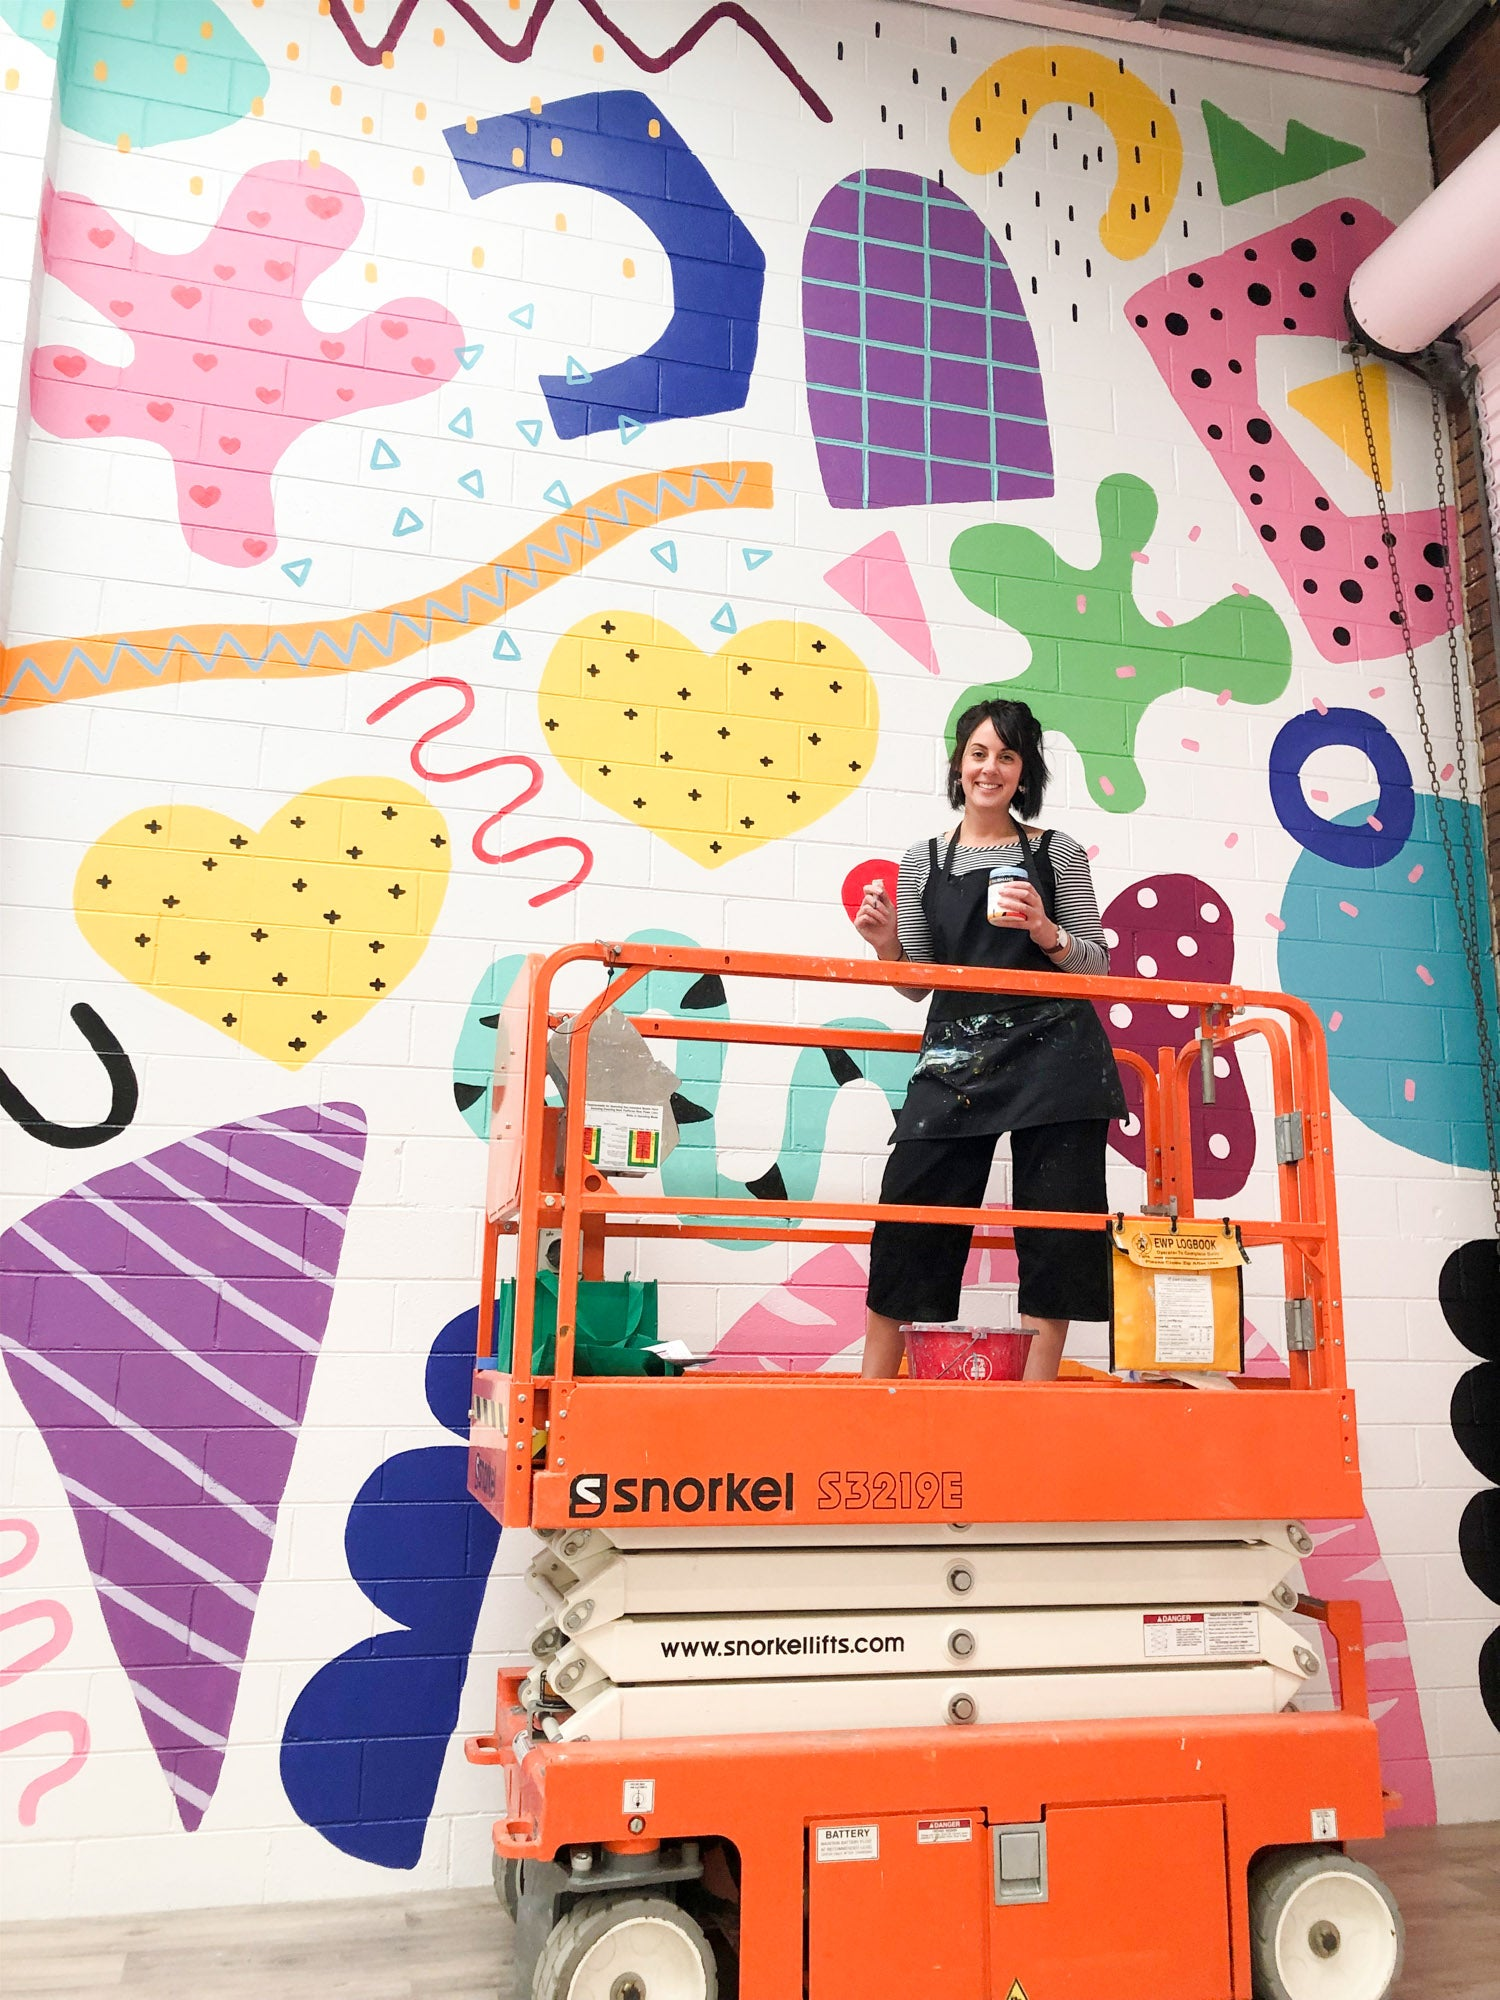 Deb McNaughton Artist - finished work- Massive wall mural - painting on forklift - Sweetsticks -  Melbourne